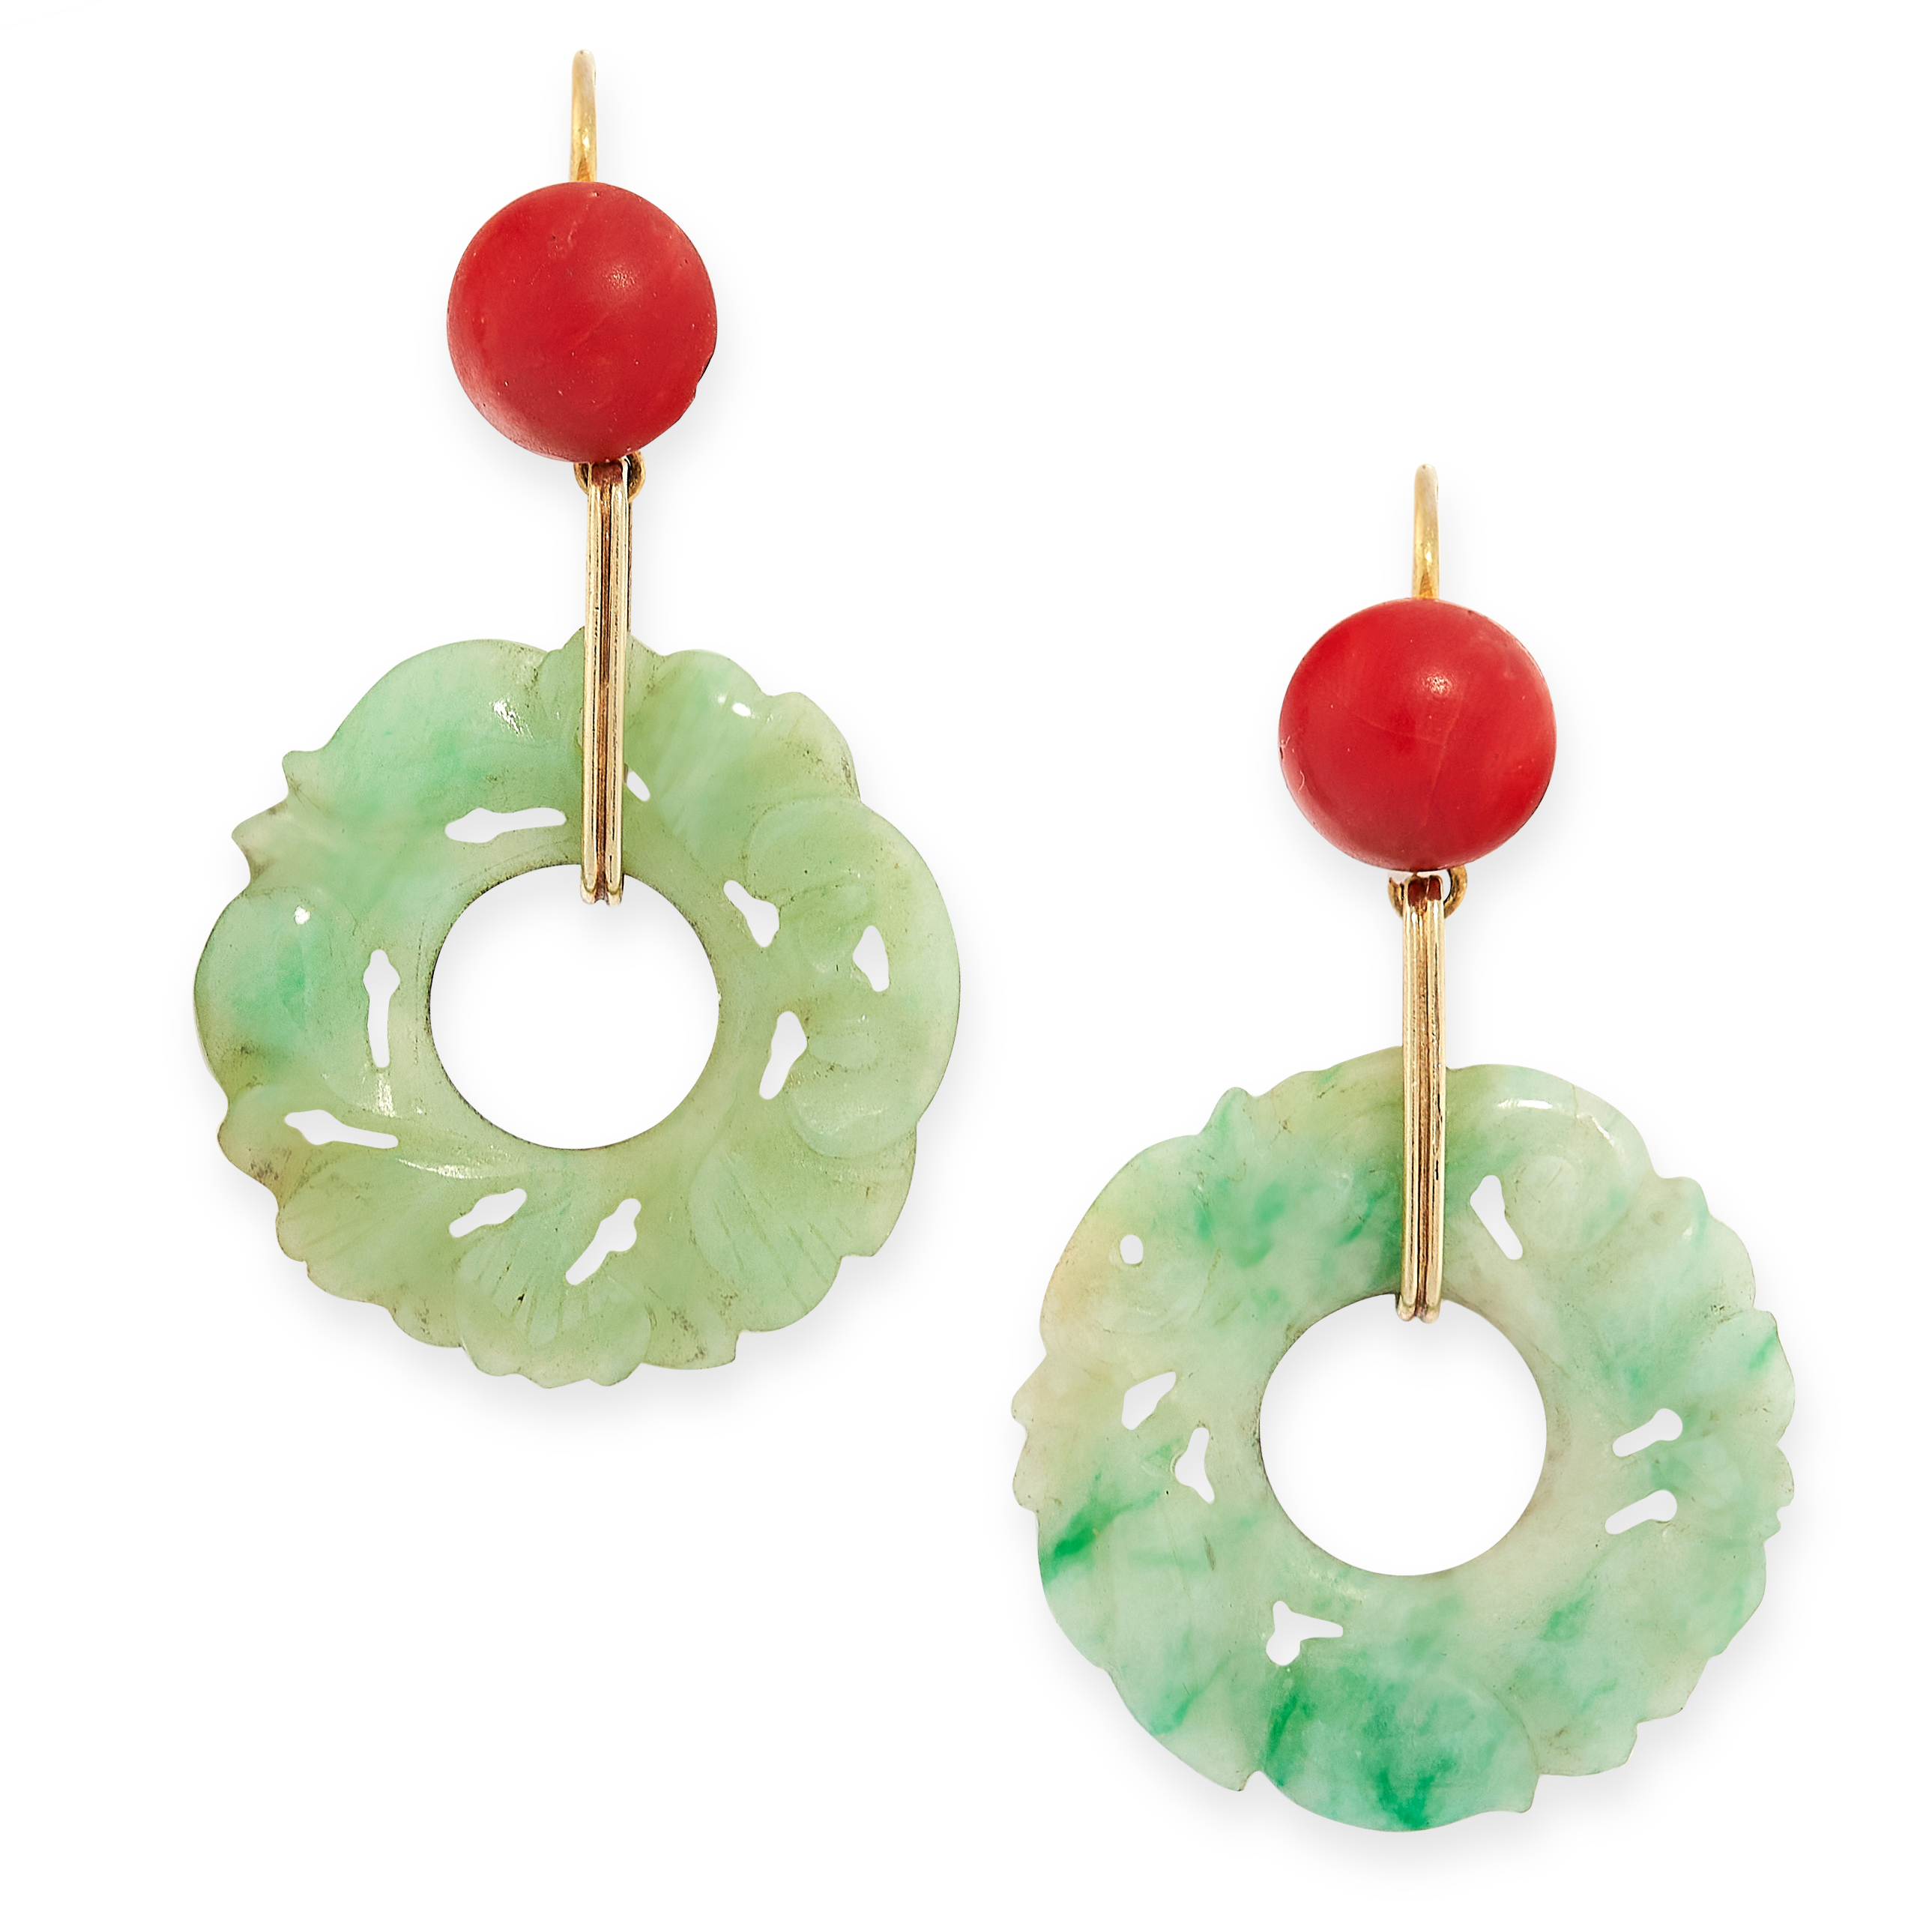 PAIR OF ANTIQUE CORAL AND JADEITE JADE EARRINGS in yellow gold, each set with a cabochon coral